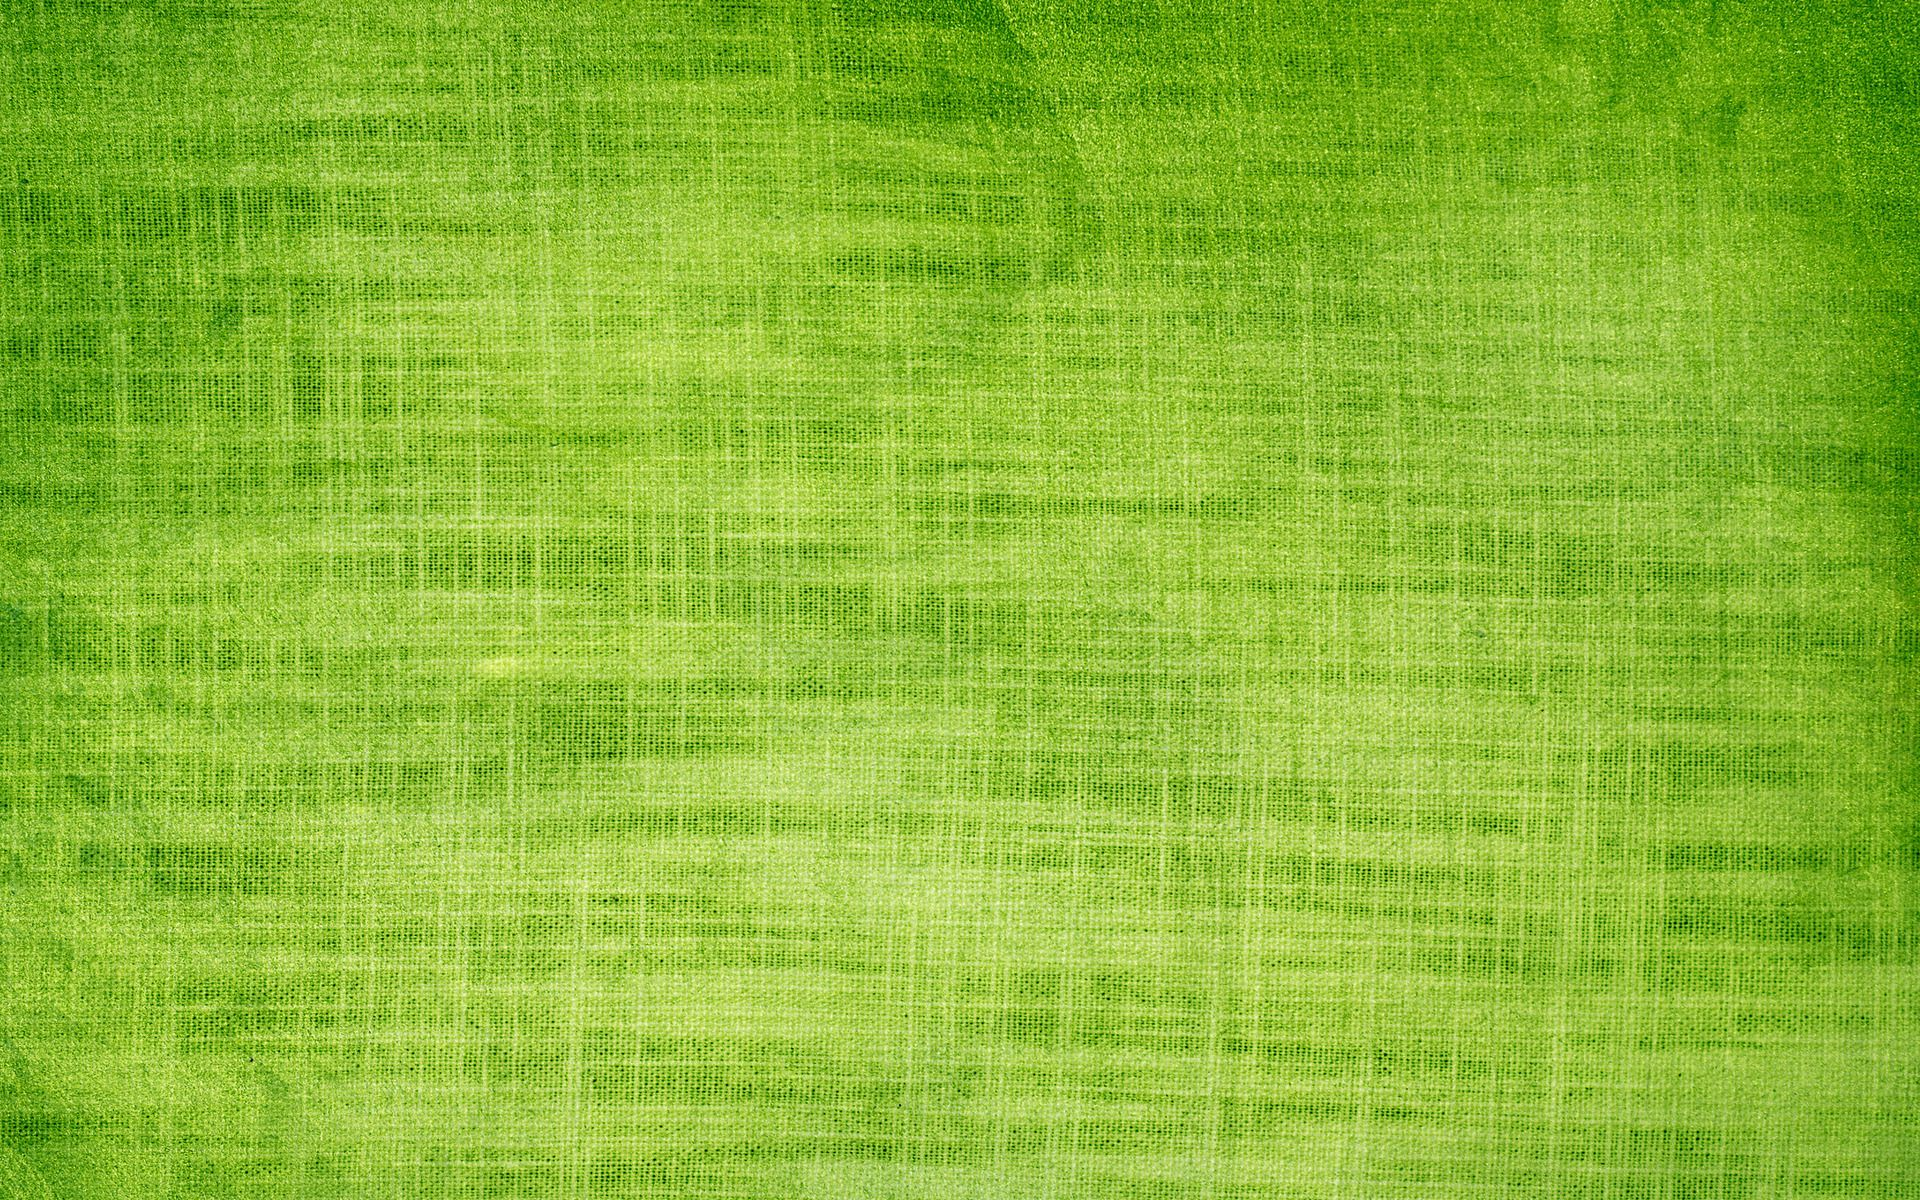 textured wallpaper 3 Desktop Wallpapers